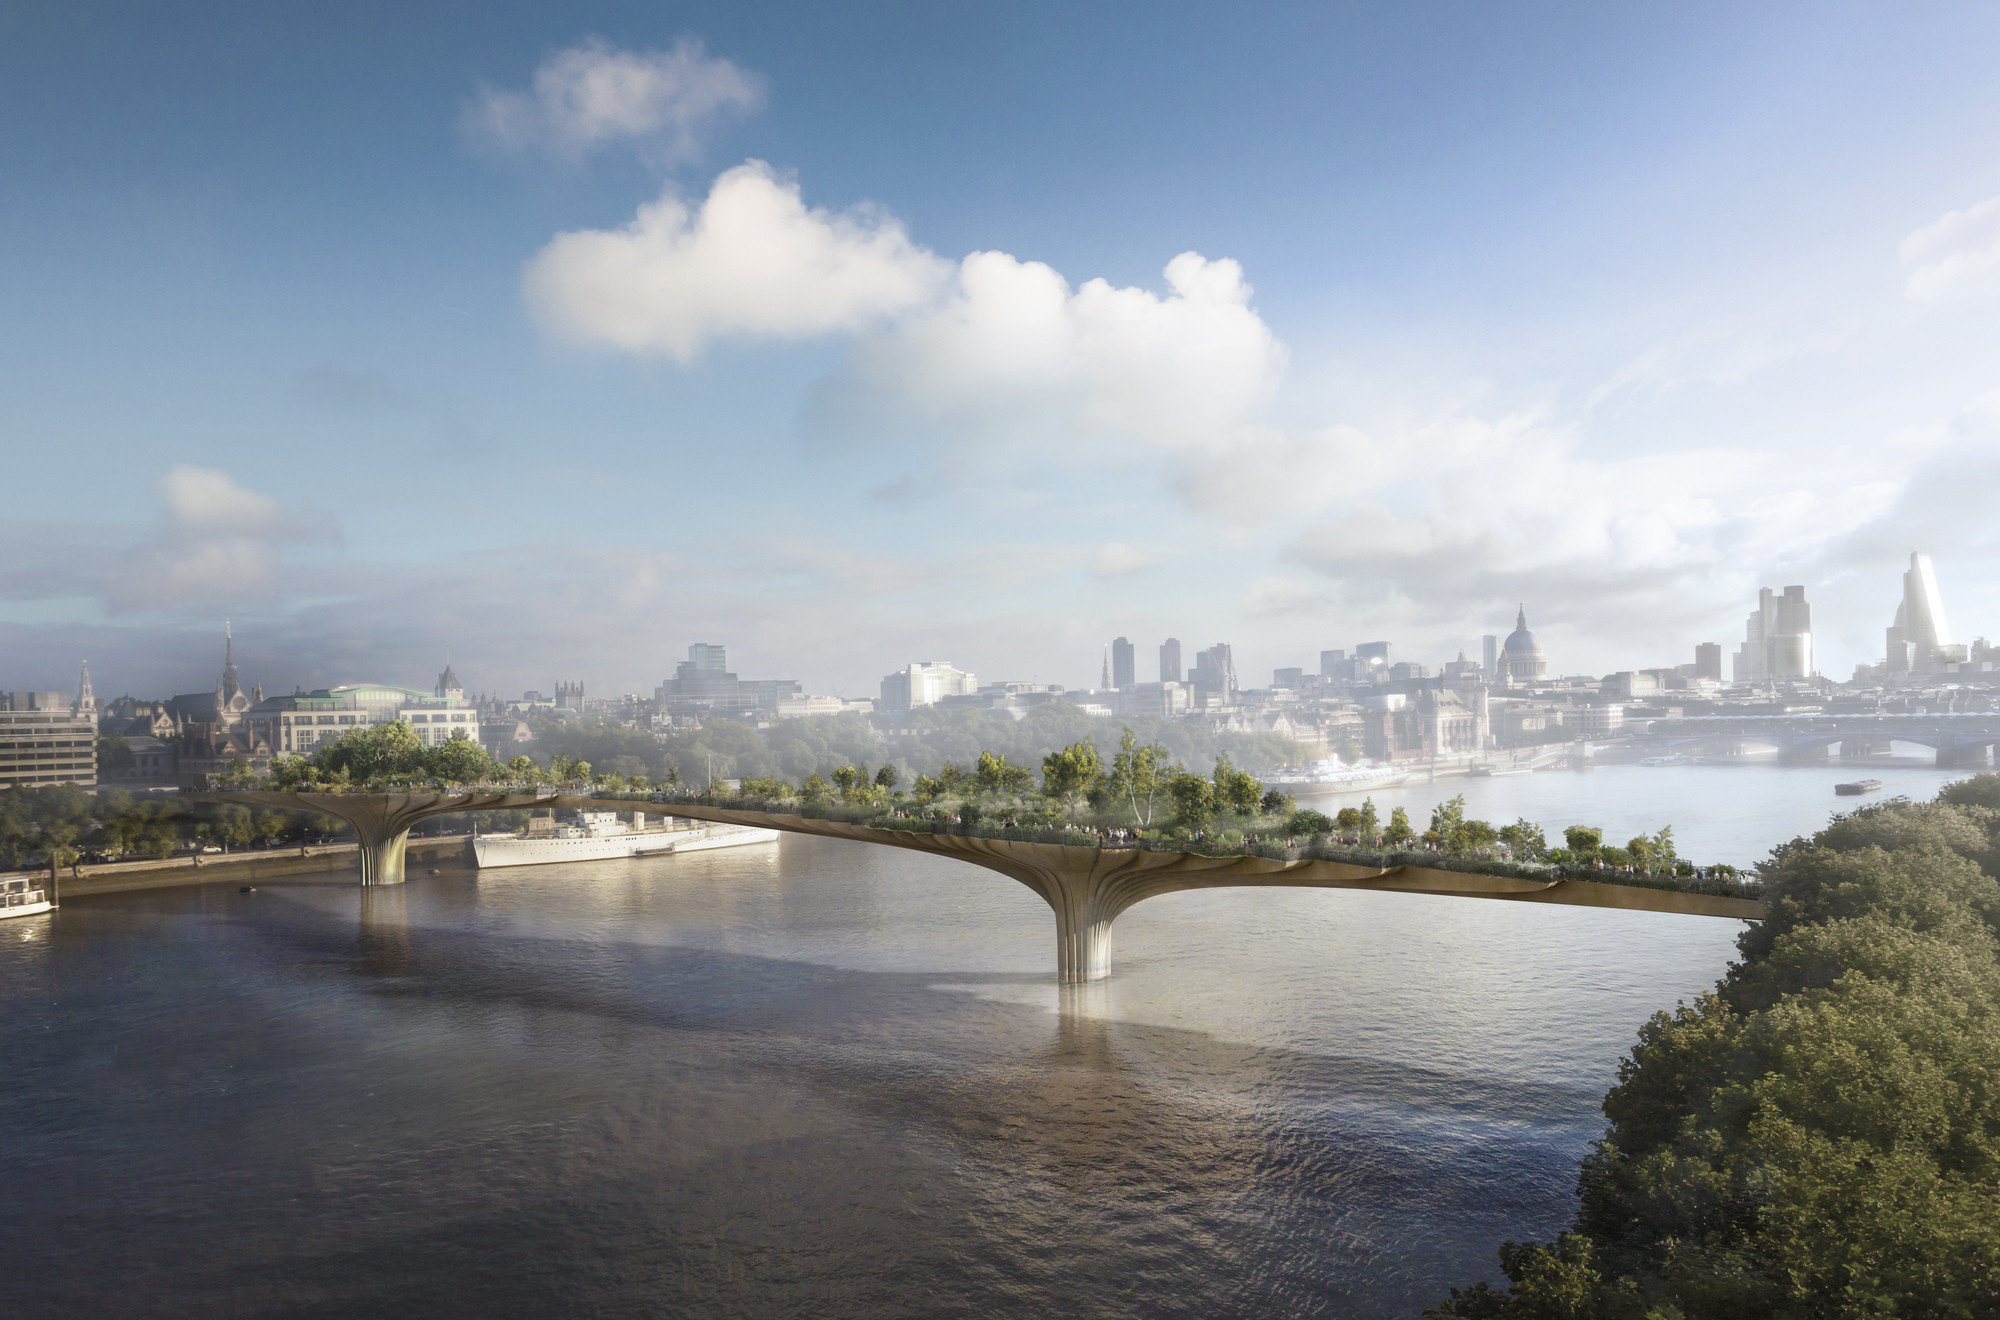 Garden Bridge Plans Face Fresh Attack After Initial Planning Permission, Courtesy of Arup